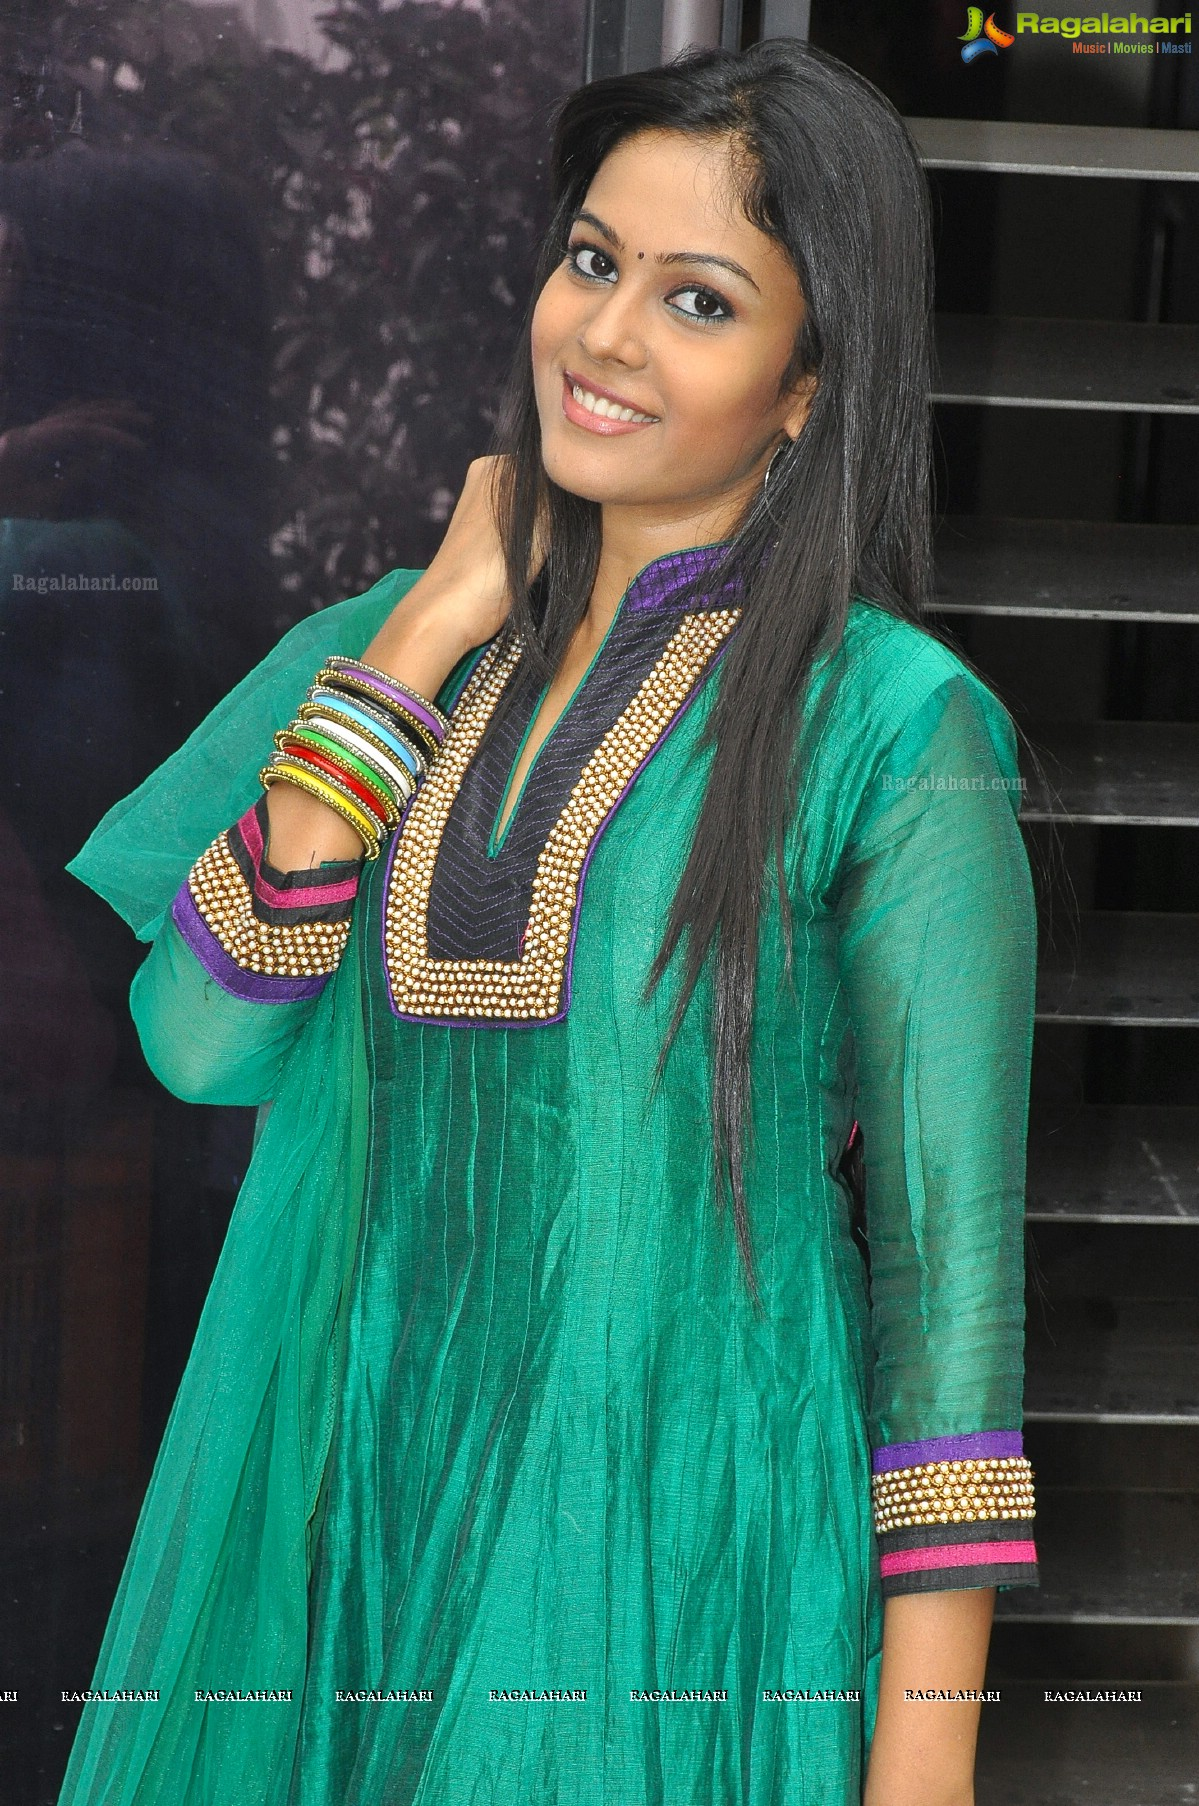 Chandini Tamilarasan Kaalicharan heroine